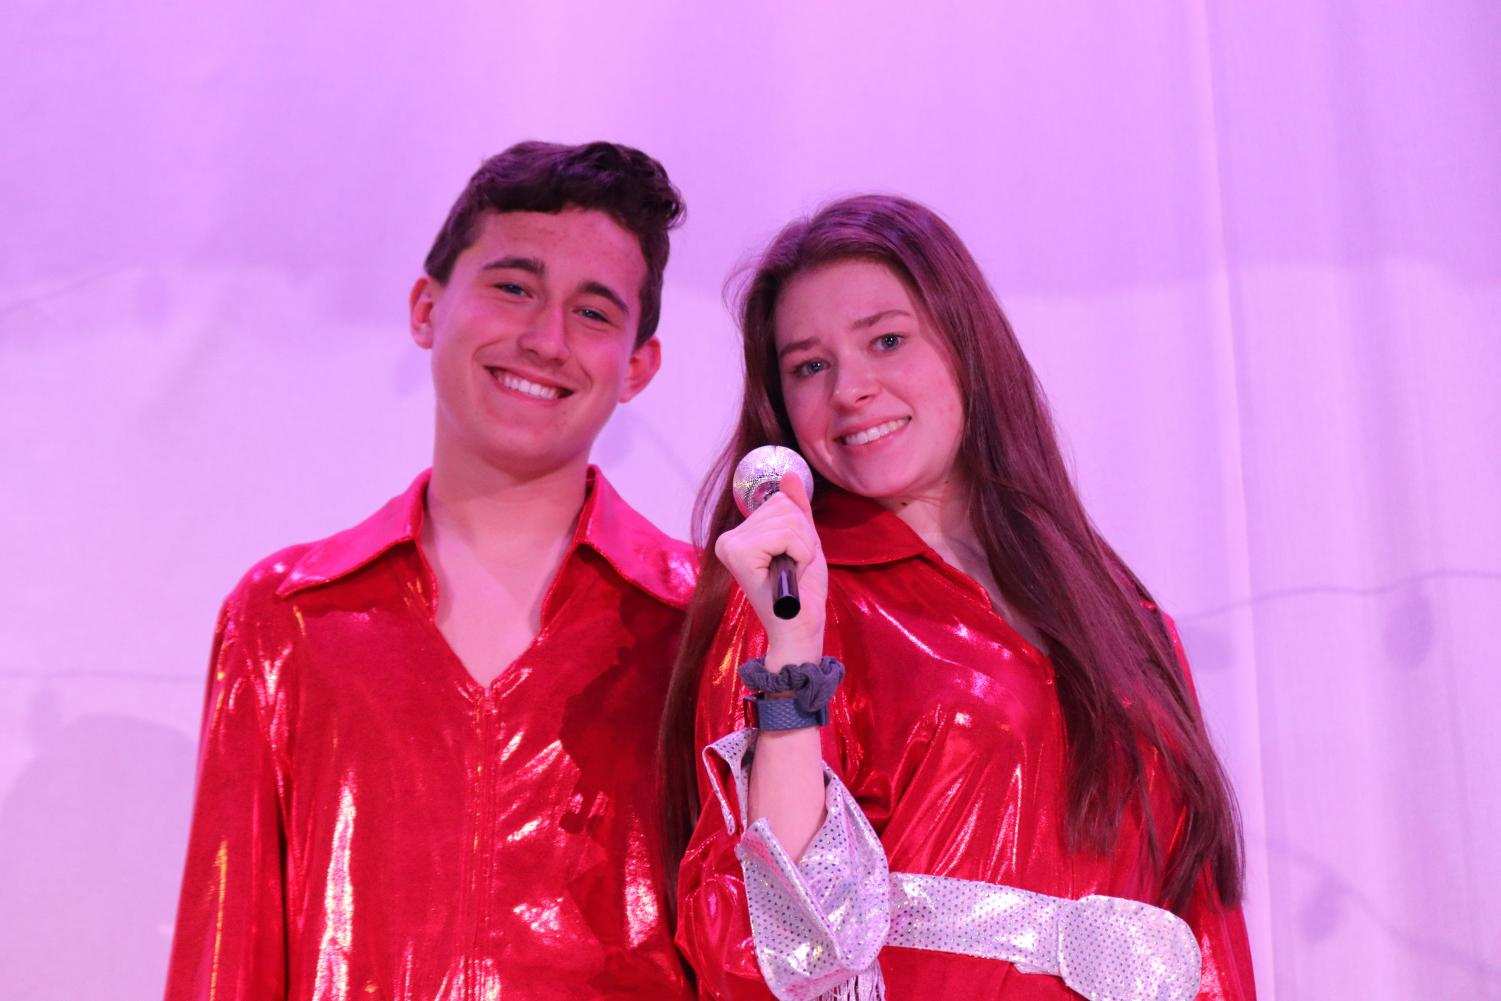 Gideon Hill (Harry Bright) and Allison Butler (Tanya) prepare for their lead roles in Mamma Mia! This will be Hill's first performance in any play.